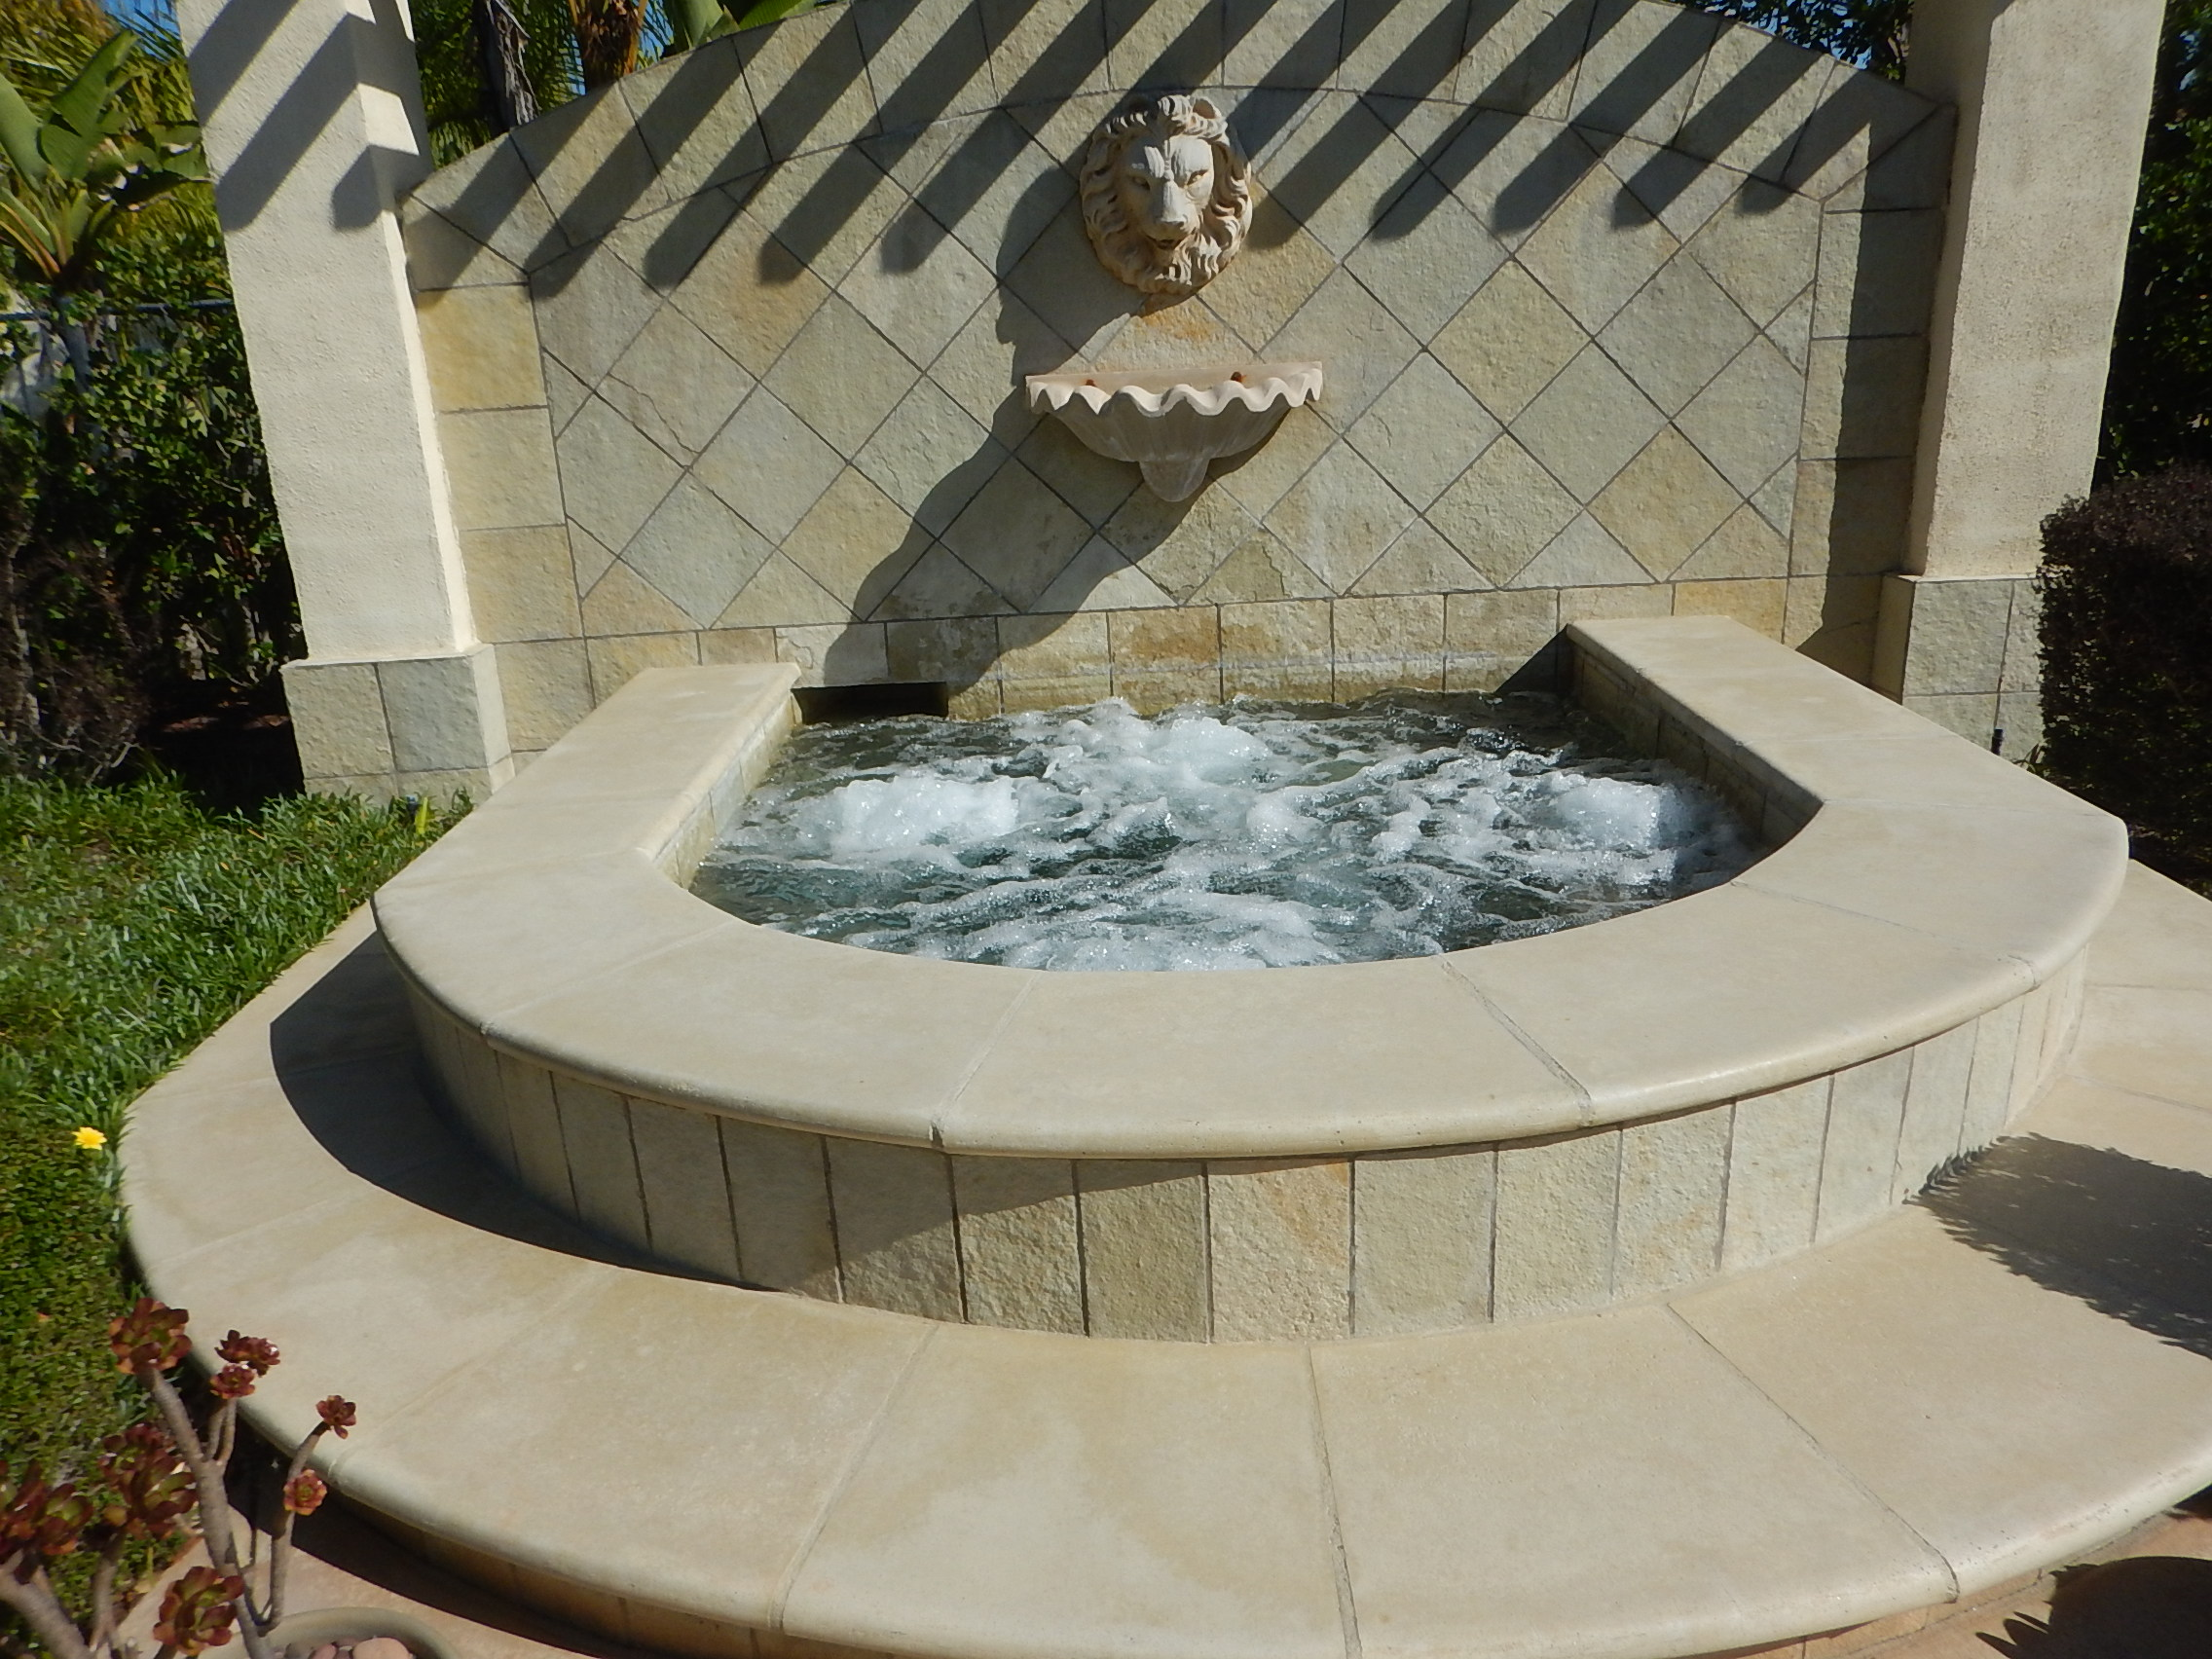 Jacuzzi Pool Covers Pool And Spa Inspections San Diego The Property Inspection Pros